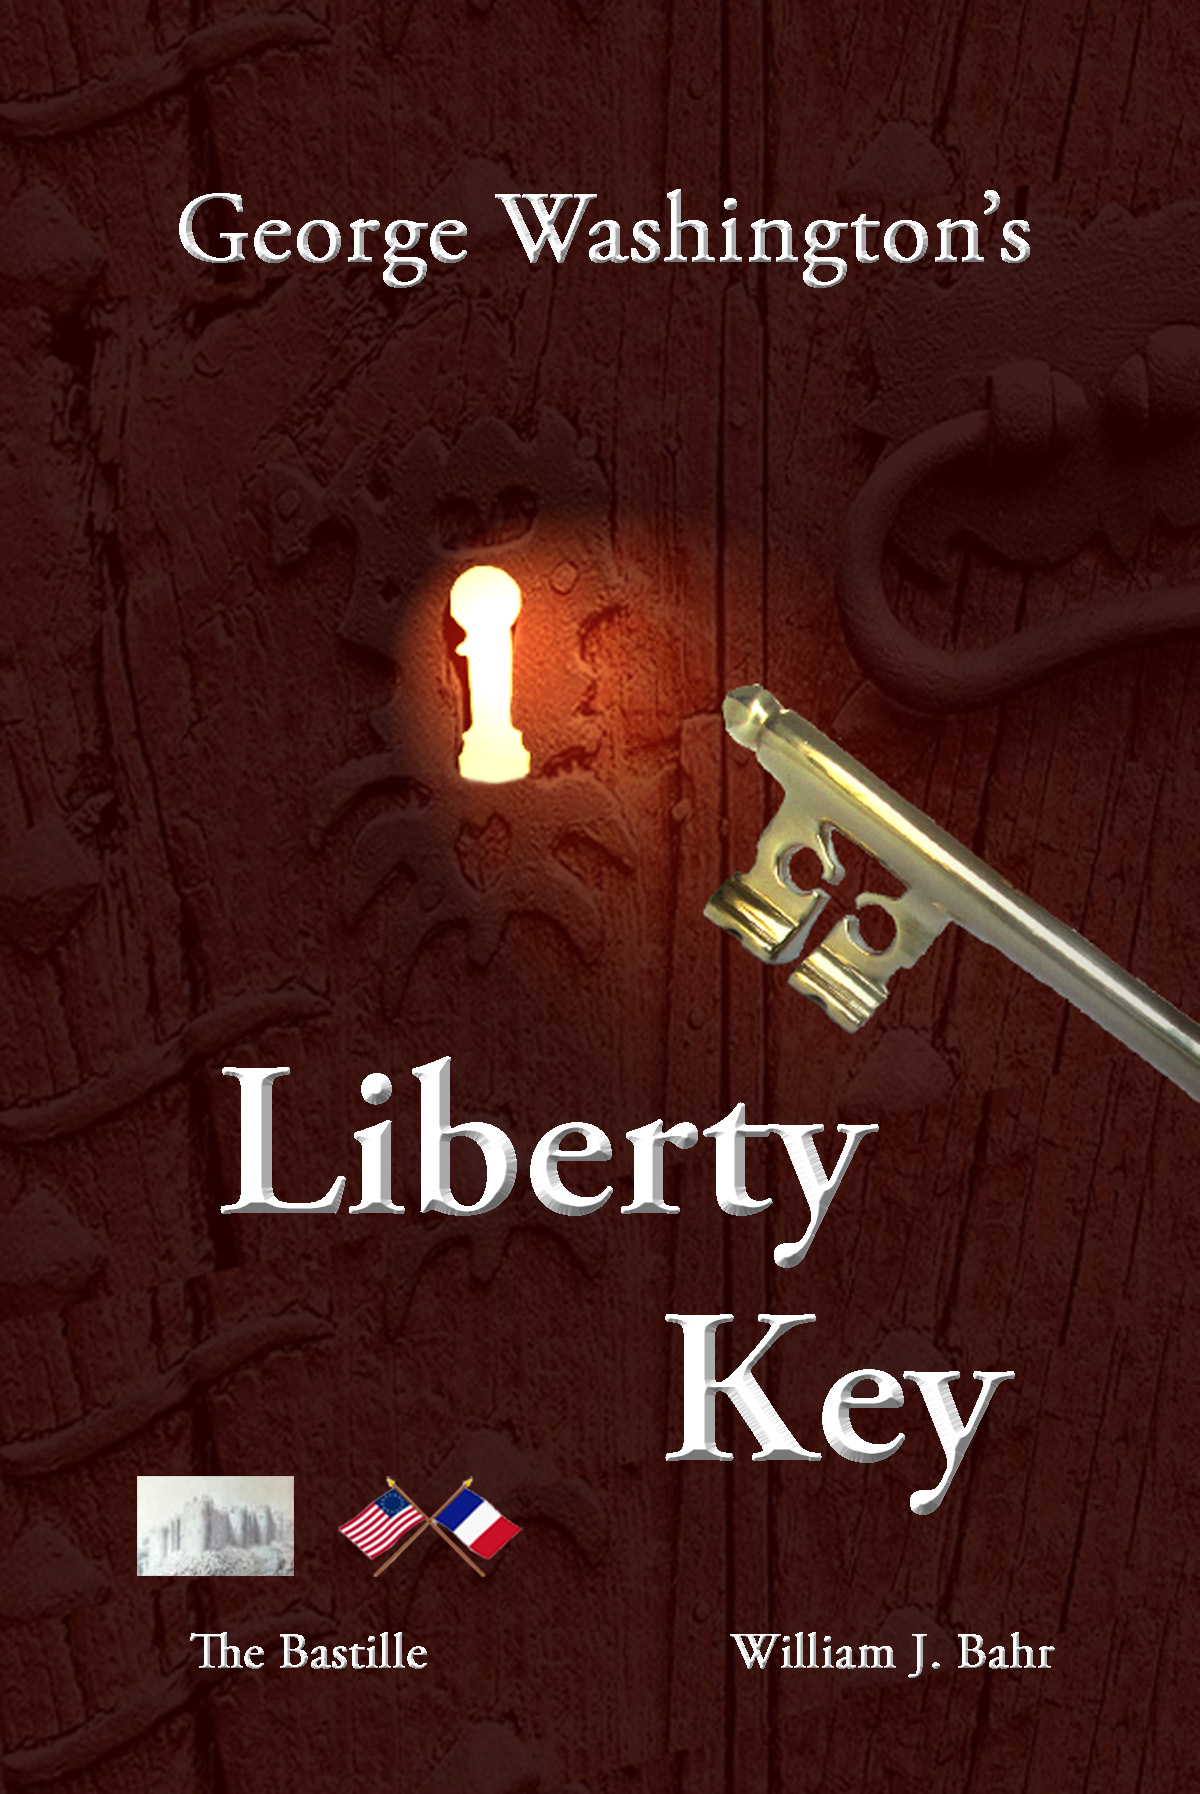 """I know not what course others may take; but as for me, I'd recommend  getting a 'lock' on it by reading George Washington's Liberty Key!"""""""